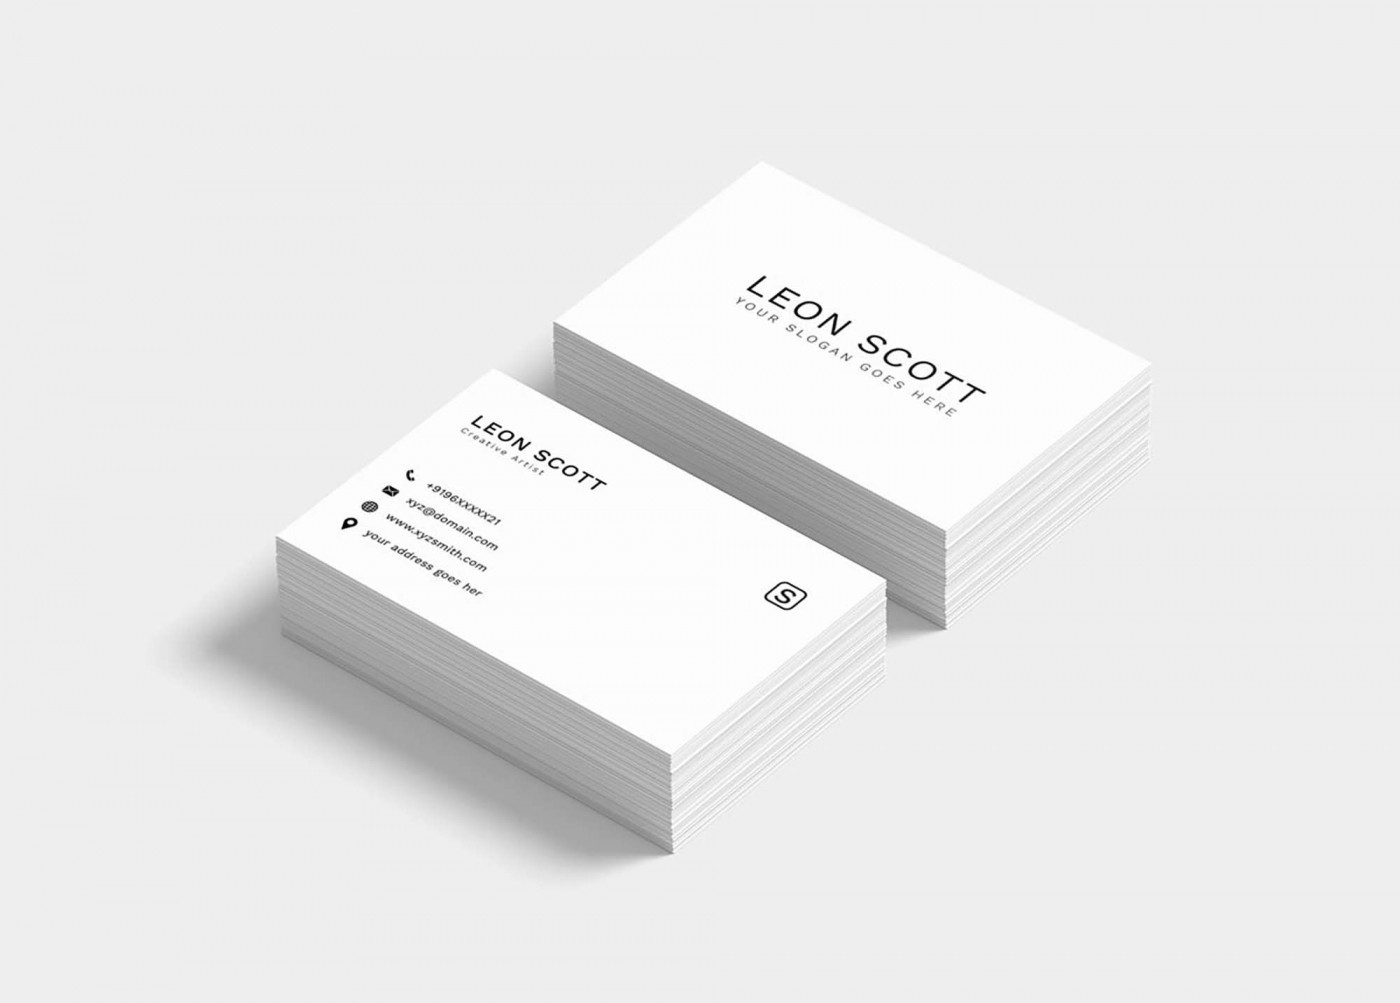 002 Best Simple Busines Card Template Psd Highest Quality  Design In Photoshop Minimalist Free1400